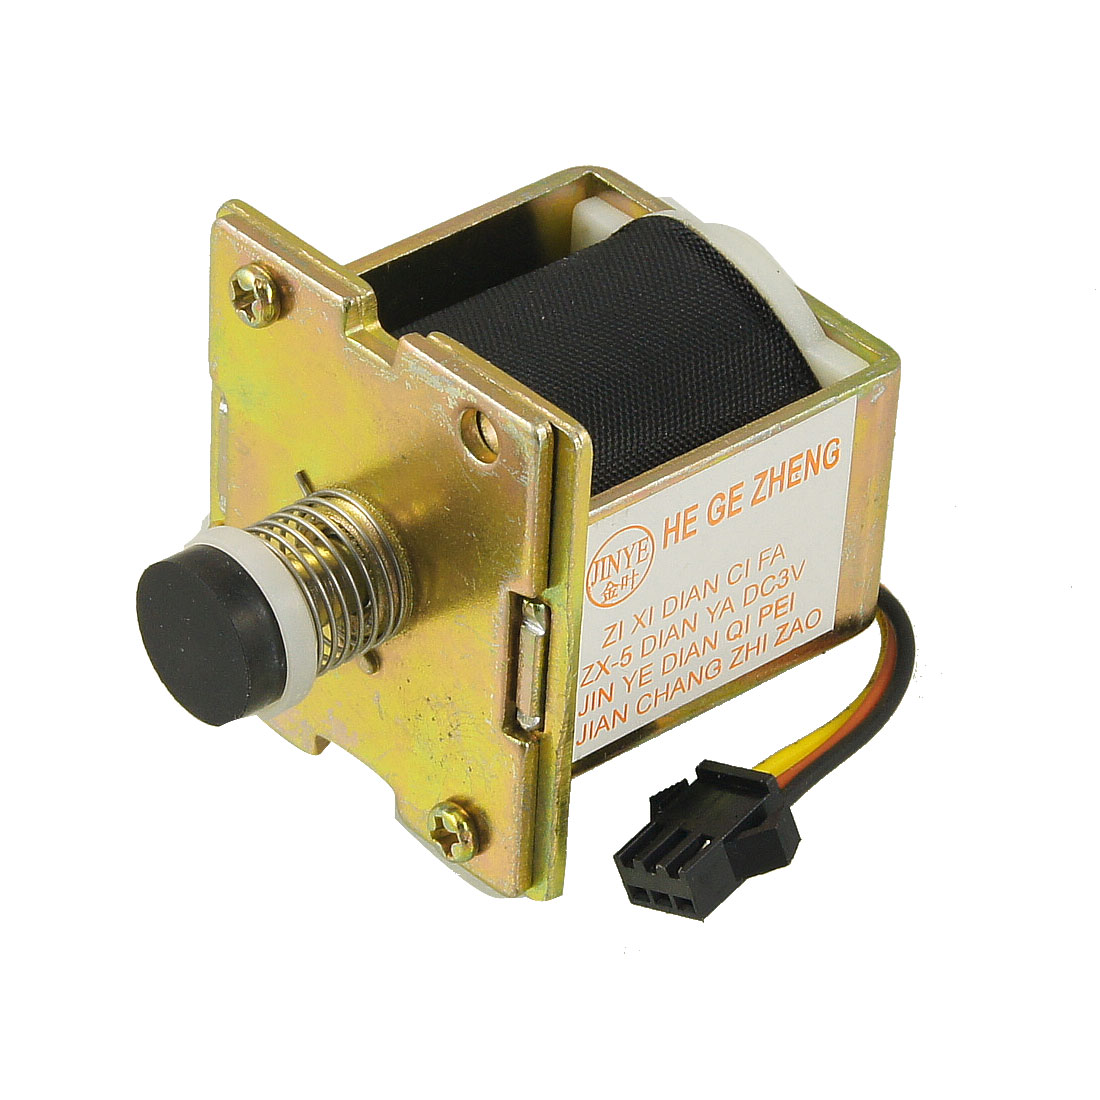 DC 3V 3 Pin Connector Solenoid Valve for LPG Gas Water Heater